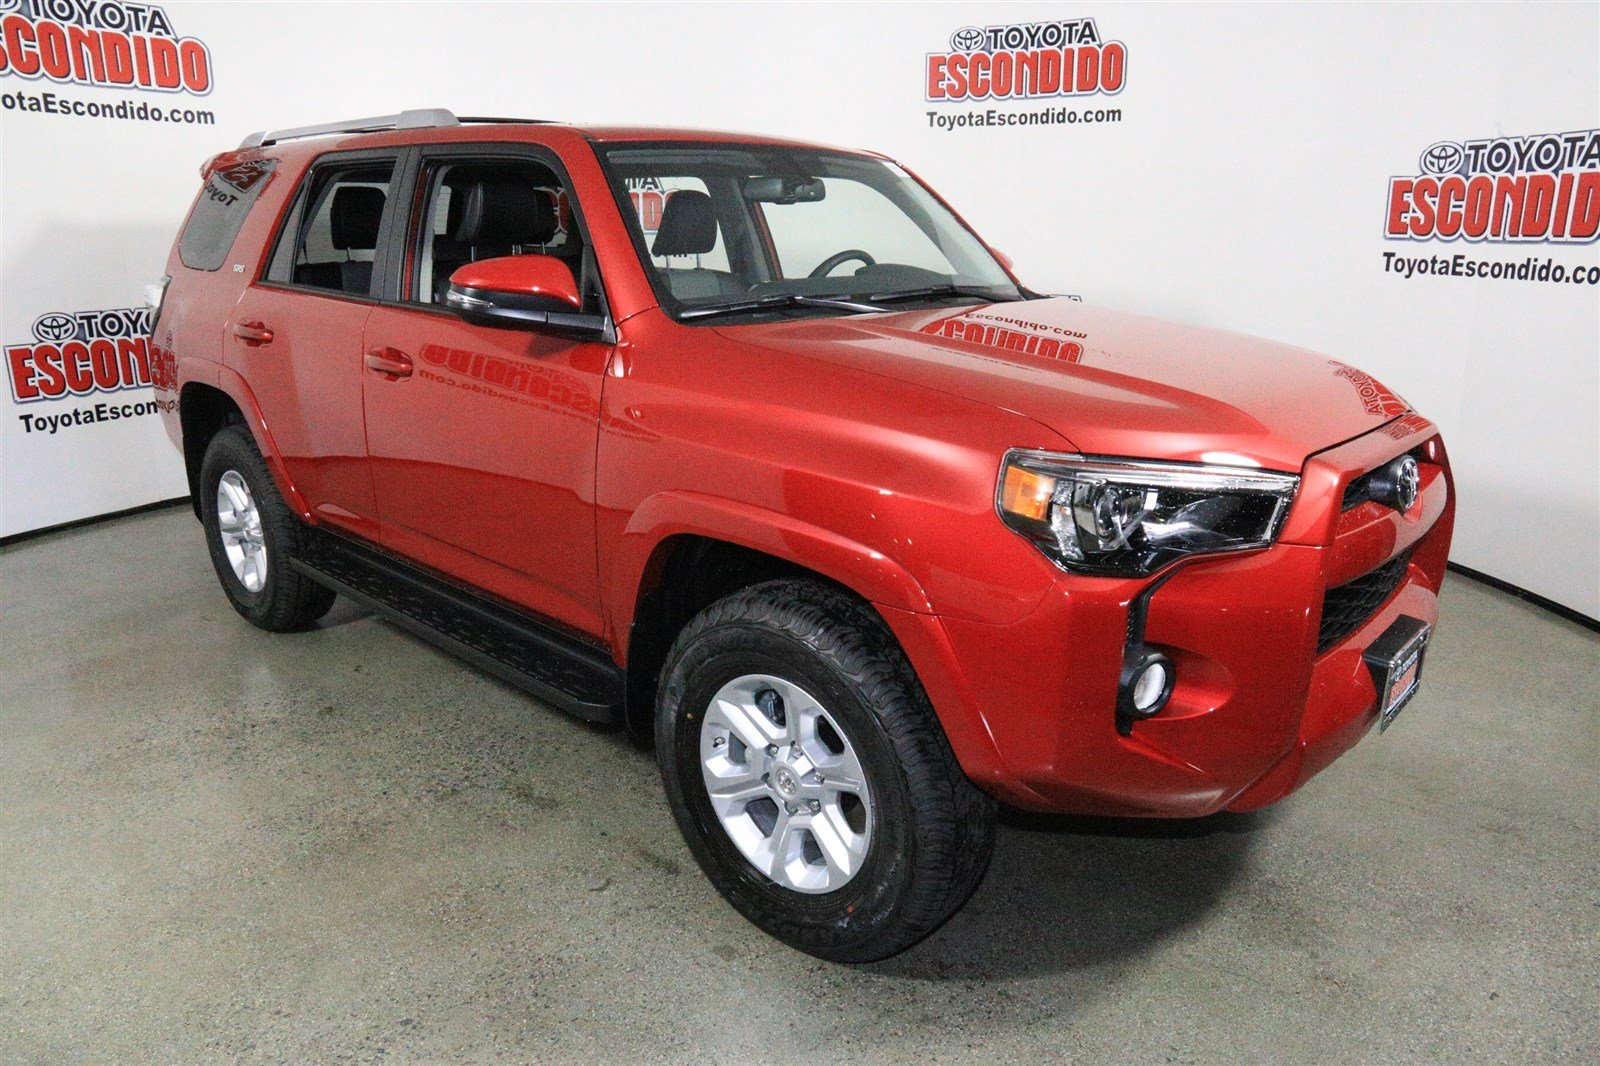 new 2017 toyota 4runner sr5 premium sport utility in escondido h5449195 toyota escondido. Black Bedroom Furniture Sets. Home Design Ideas